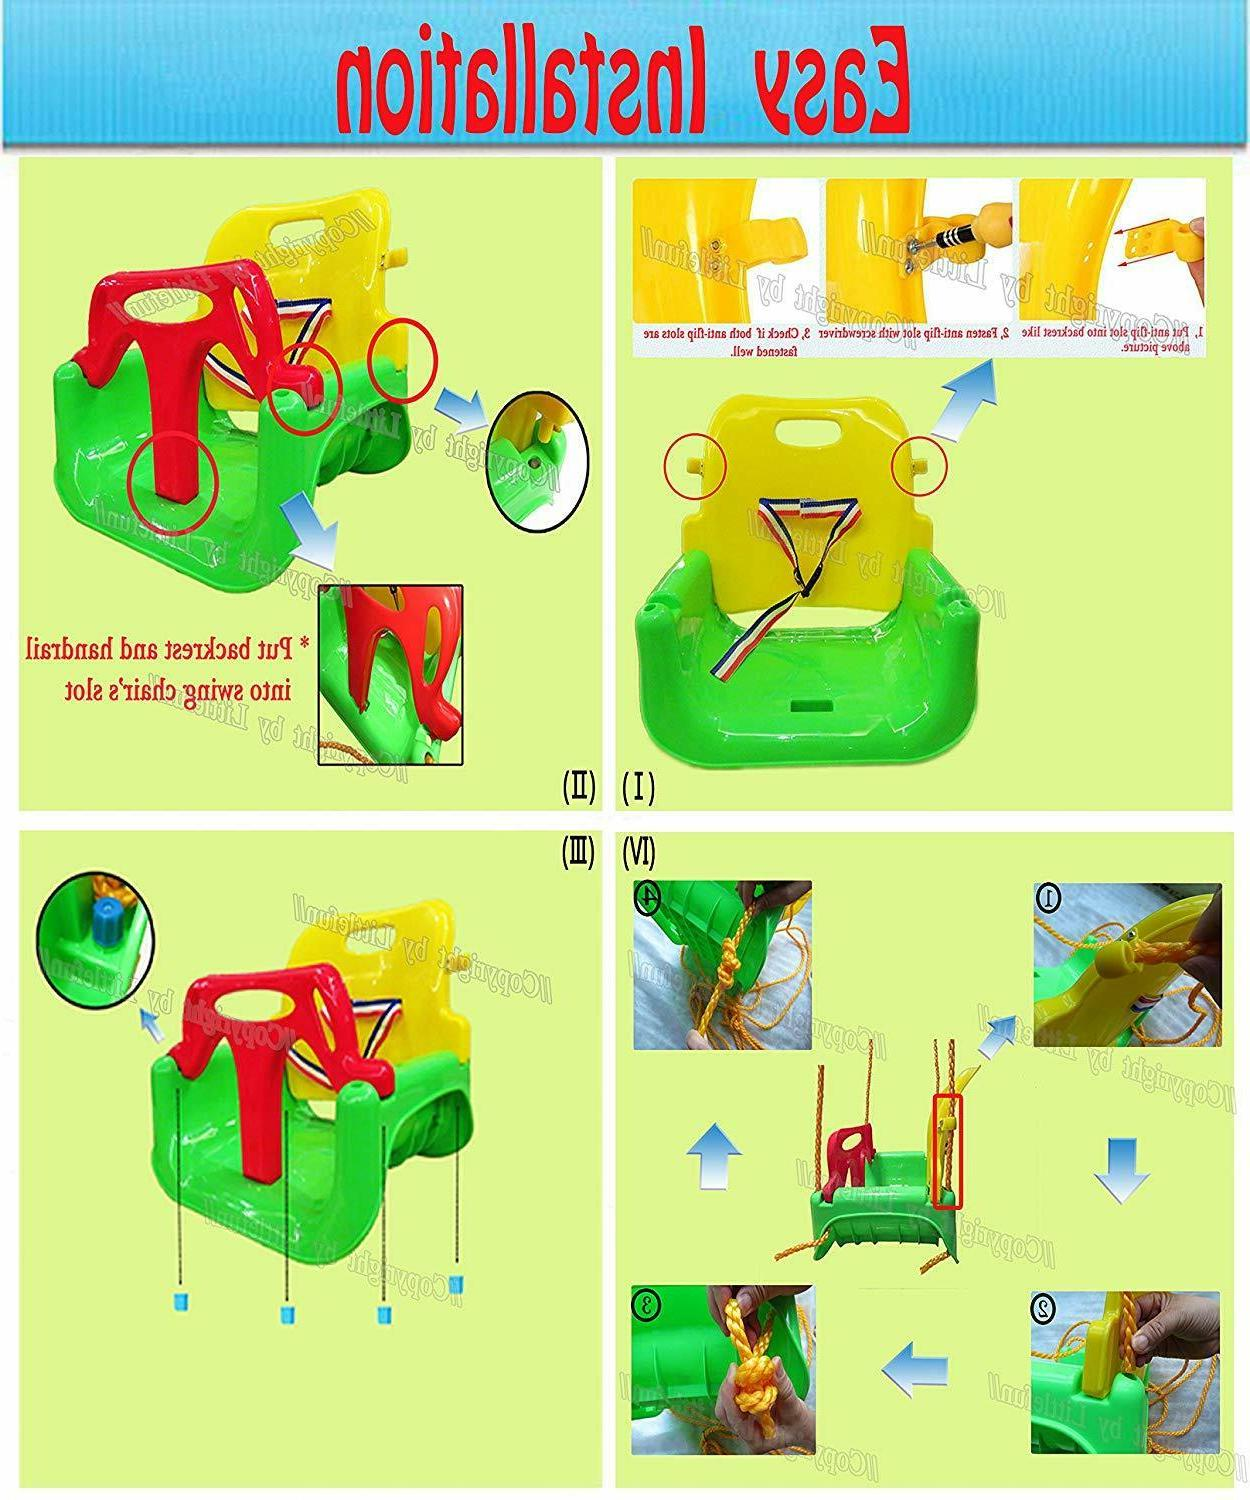 3-in-1 Infant for Seat Playground Outdoors